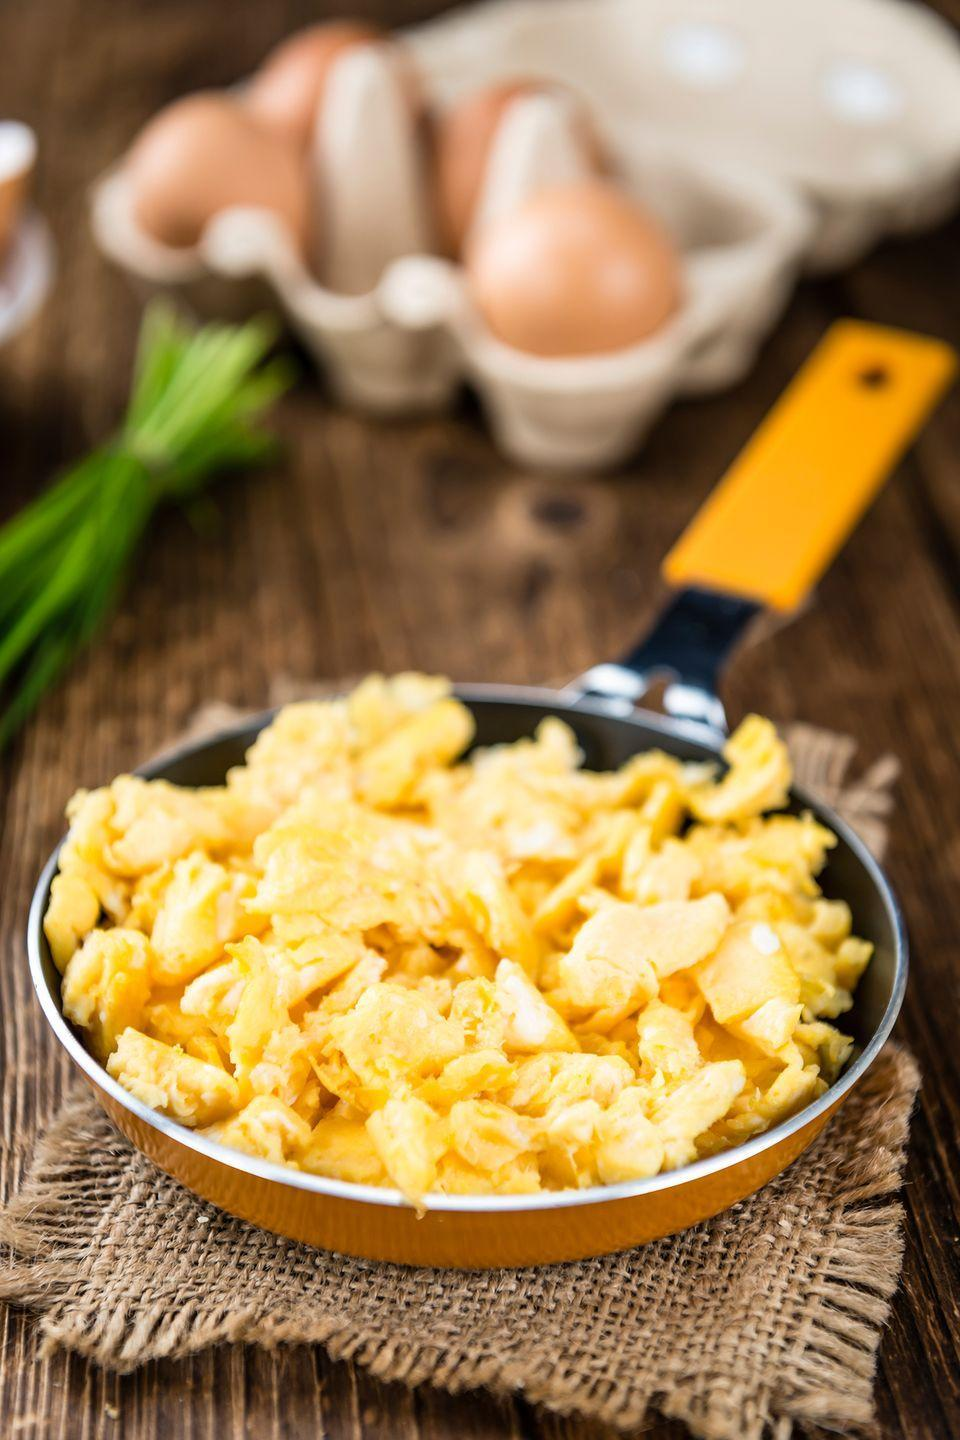 "<p>Scrambled eggs are a nutritional powerhouse, and now you have the secret to cooking them to creamy perfection.</p><p><a href=""https://www.womansday.com/food-recipes/food-drinks/recipes/a12866/basic-scrambled-eggs-recipe-wdy0514/"" rel=""nofollow noopener"" target=""_blank"" data-ylk=""slk:Get the Easy Scrambled Eggs recipe."" class=""link rapid-noclick-resp""><em>Get the Easy Scrambled Eggs recipe.</em></a></p>"